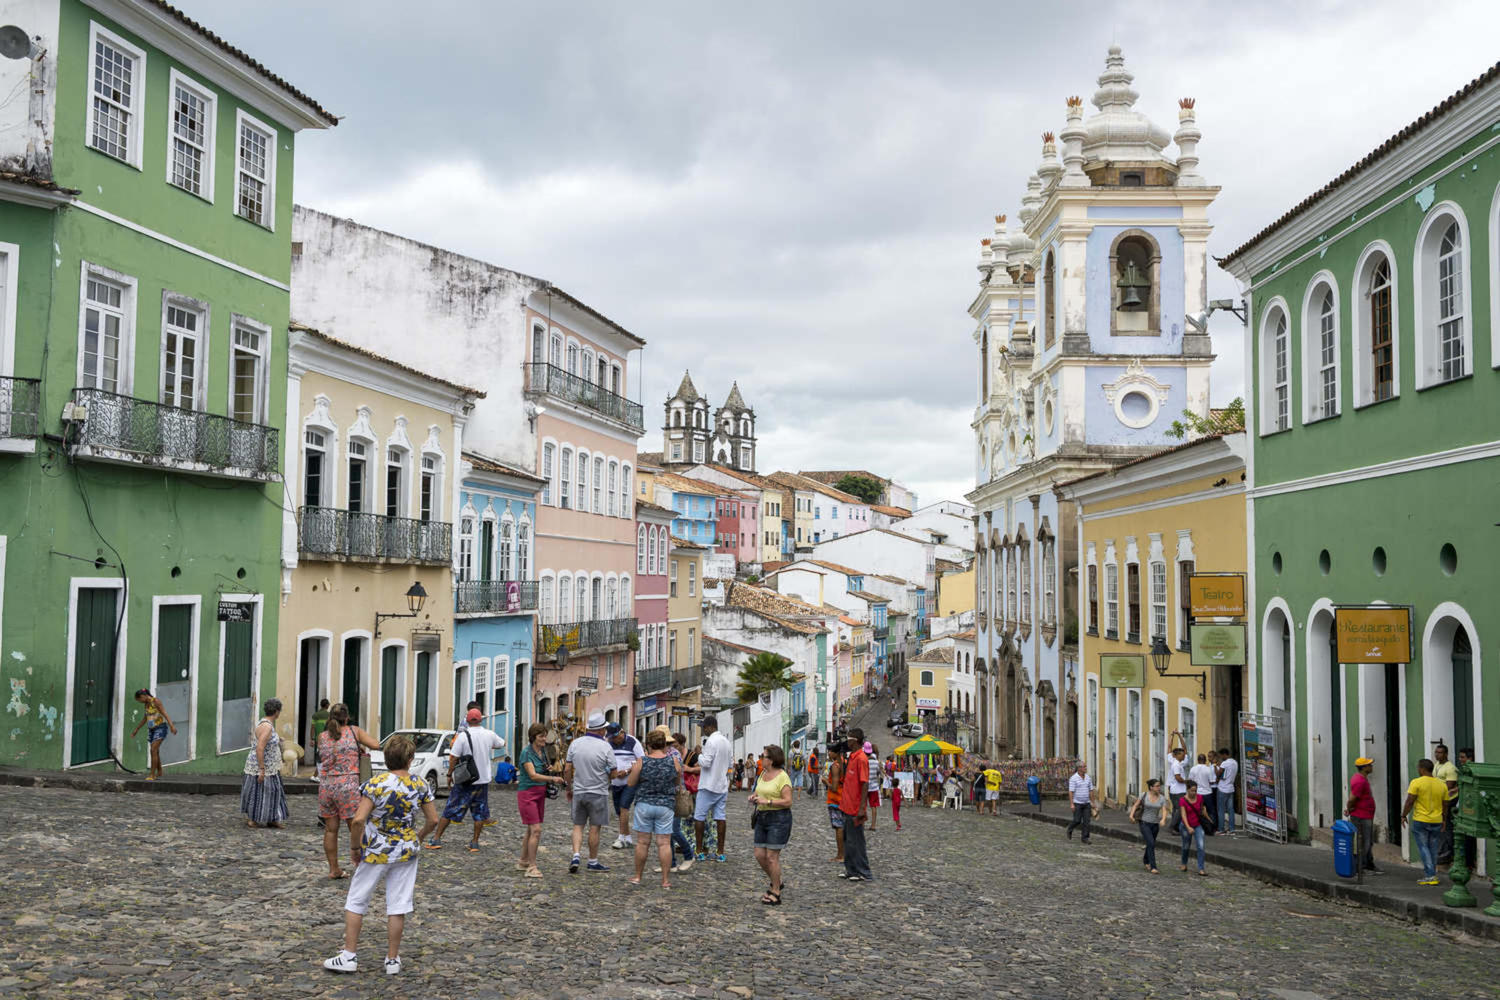 Busy plaza in the historic district of Pelourinho